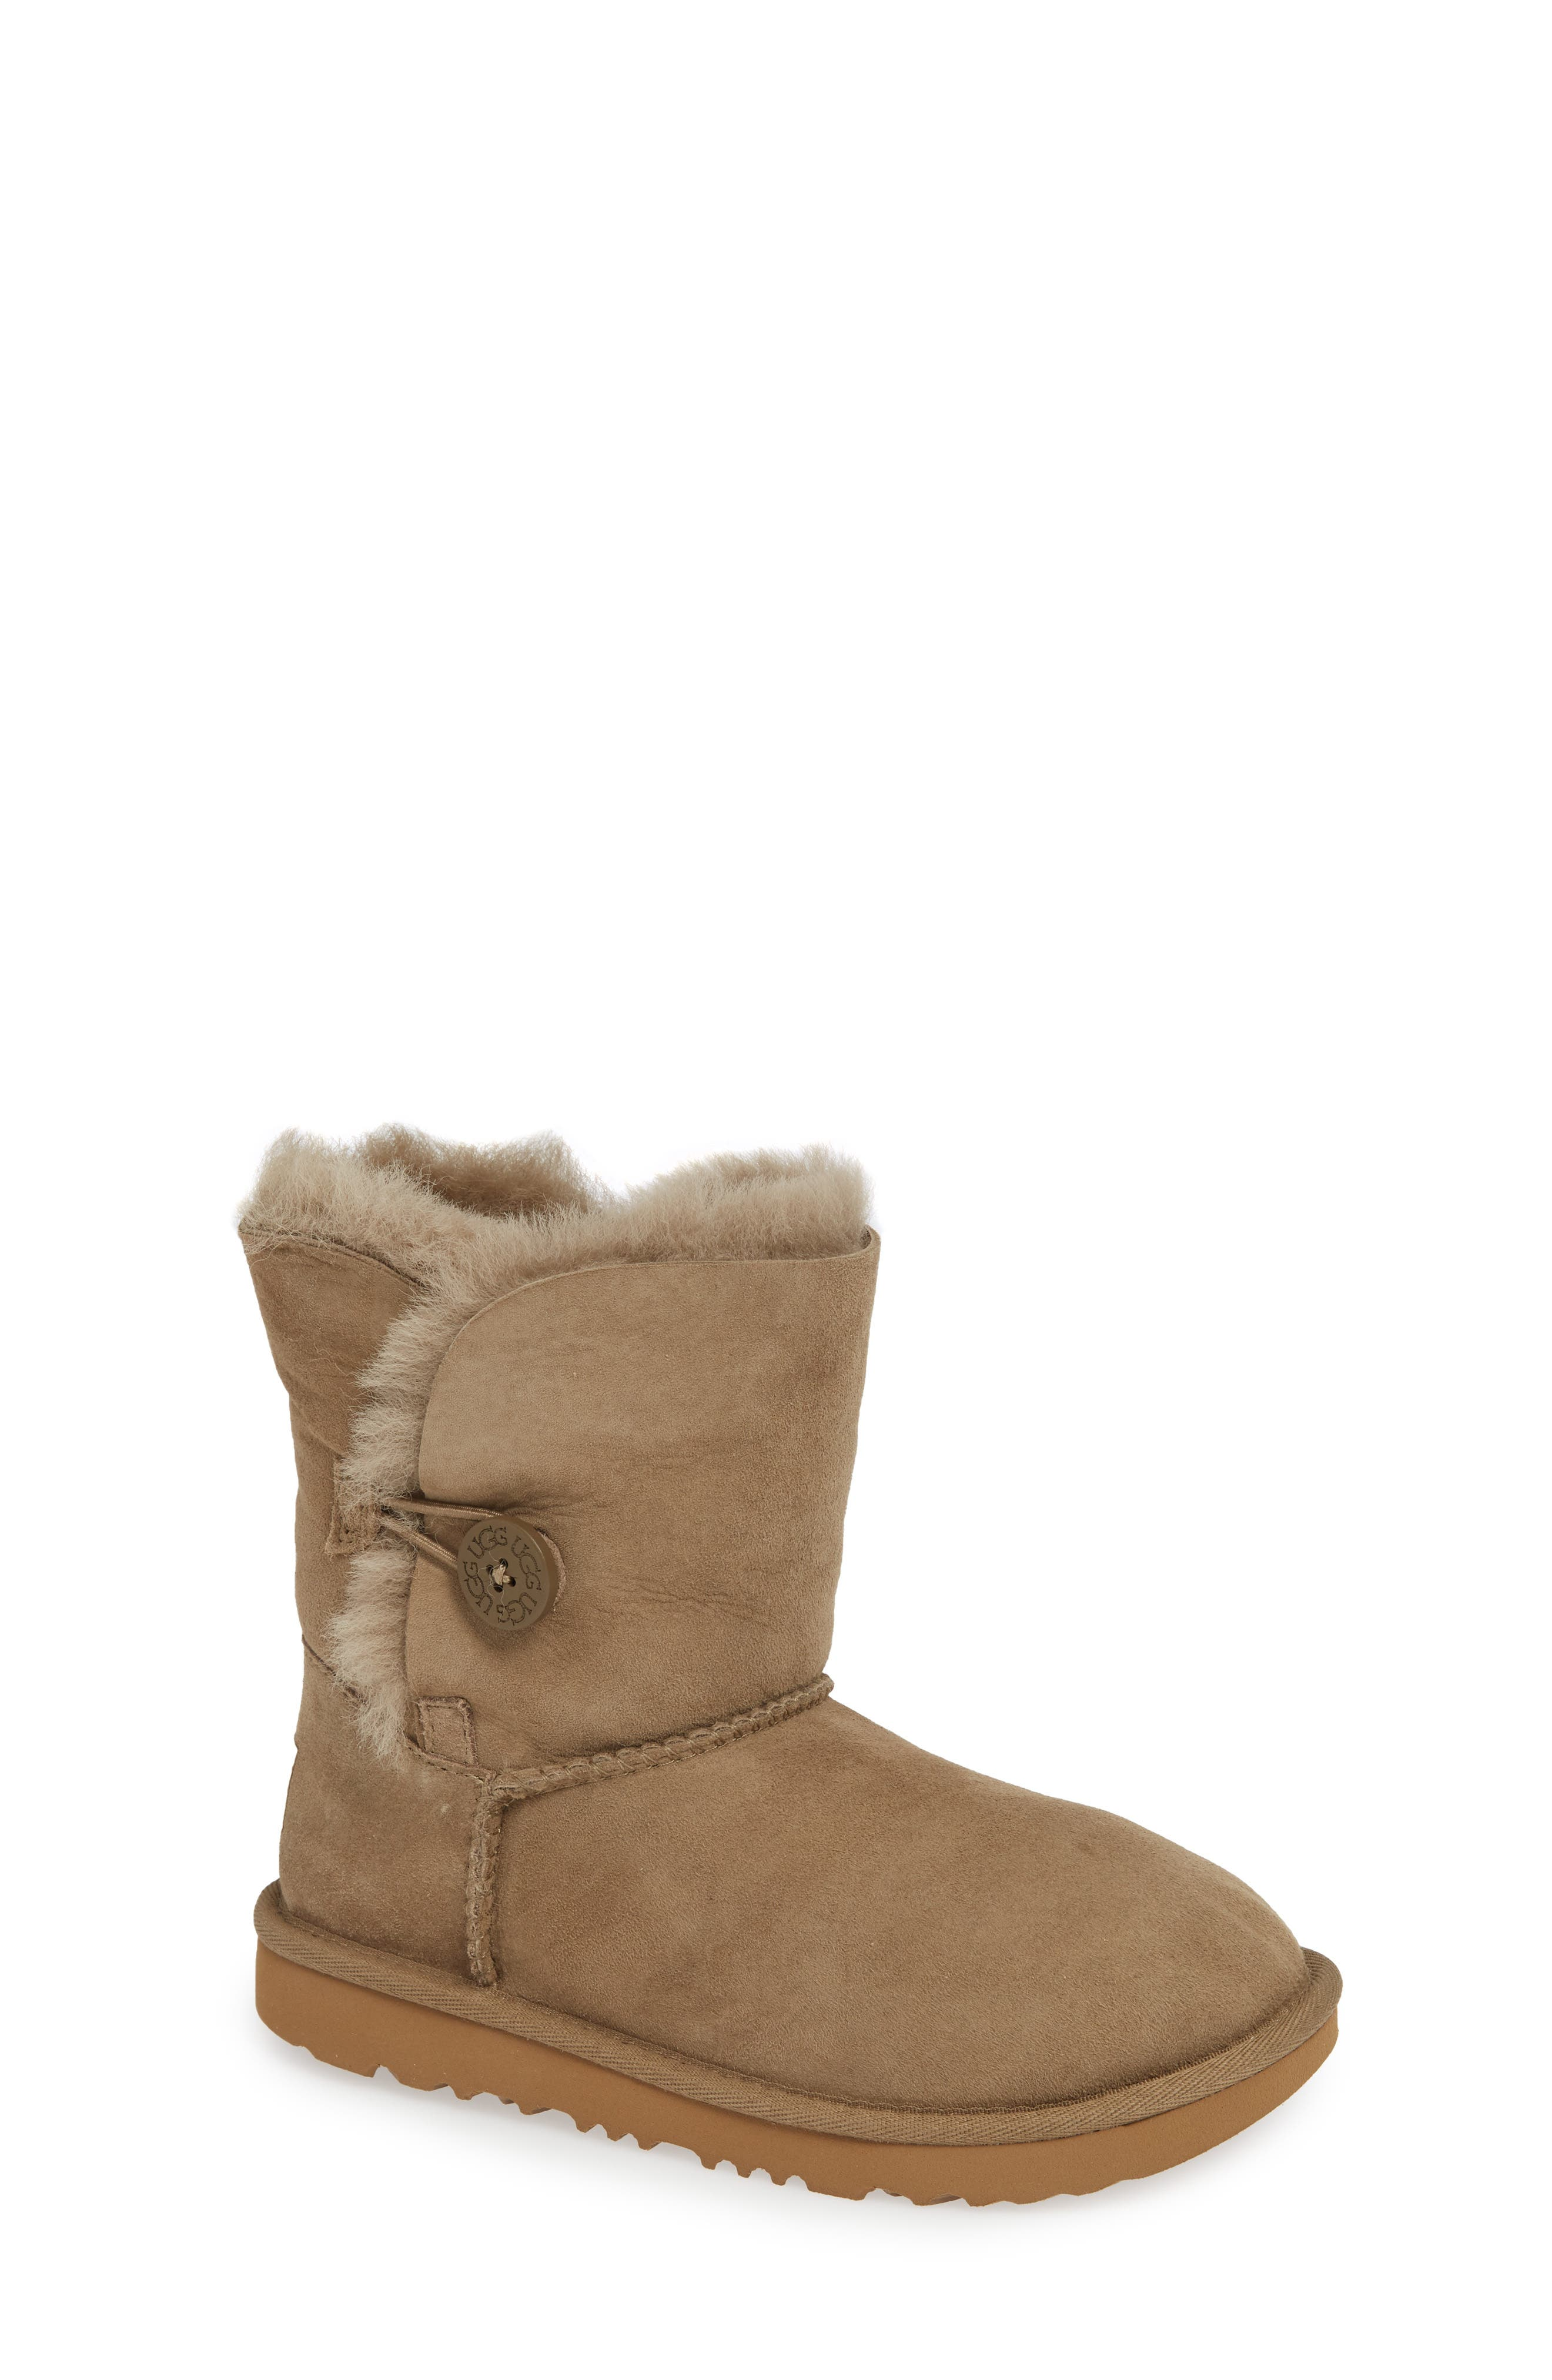 Bailey Button II Water Resistant Genuine Shearling Boot,                         Main,                         color, ANTELOPE